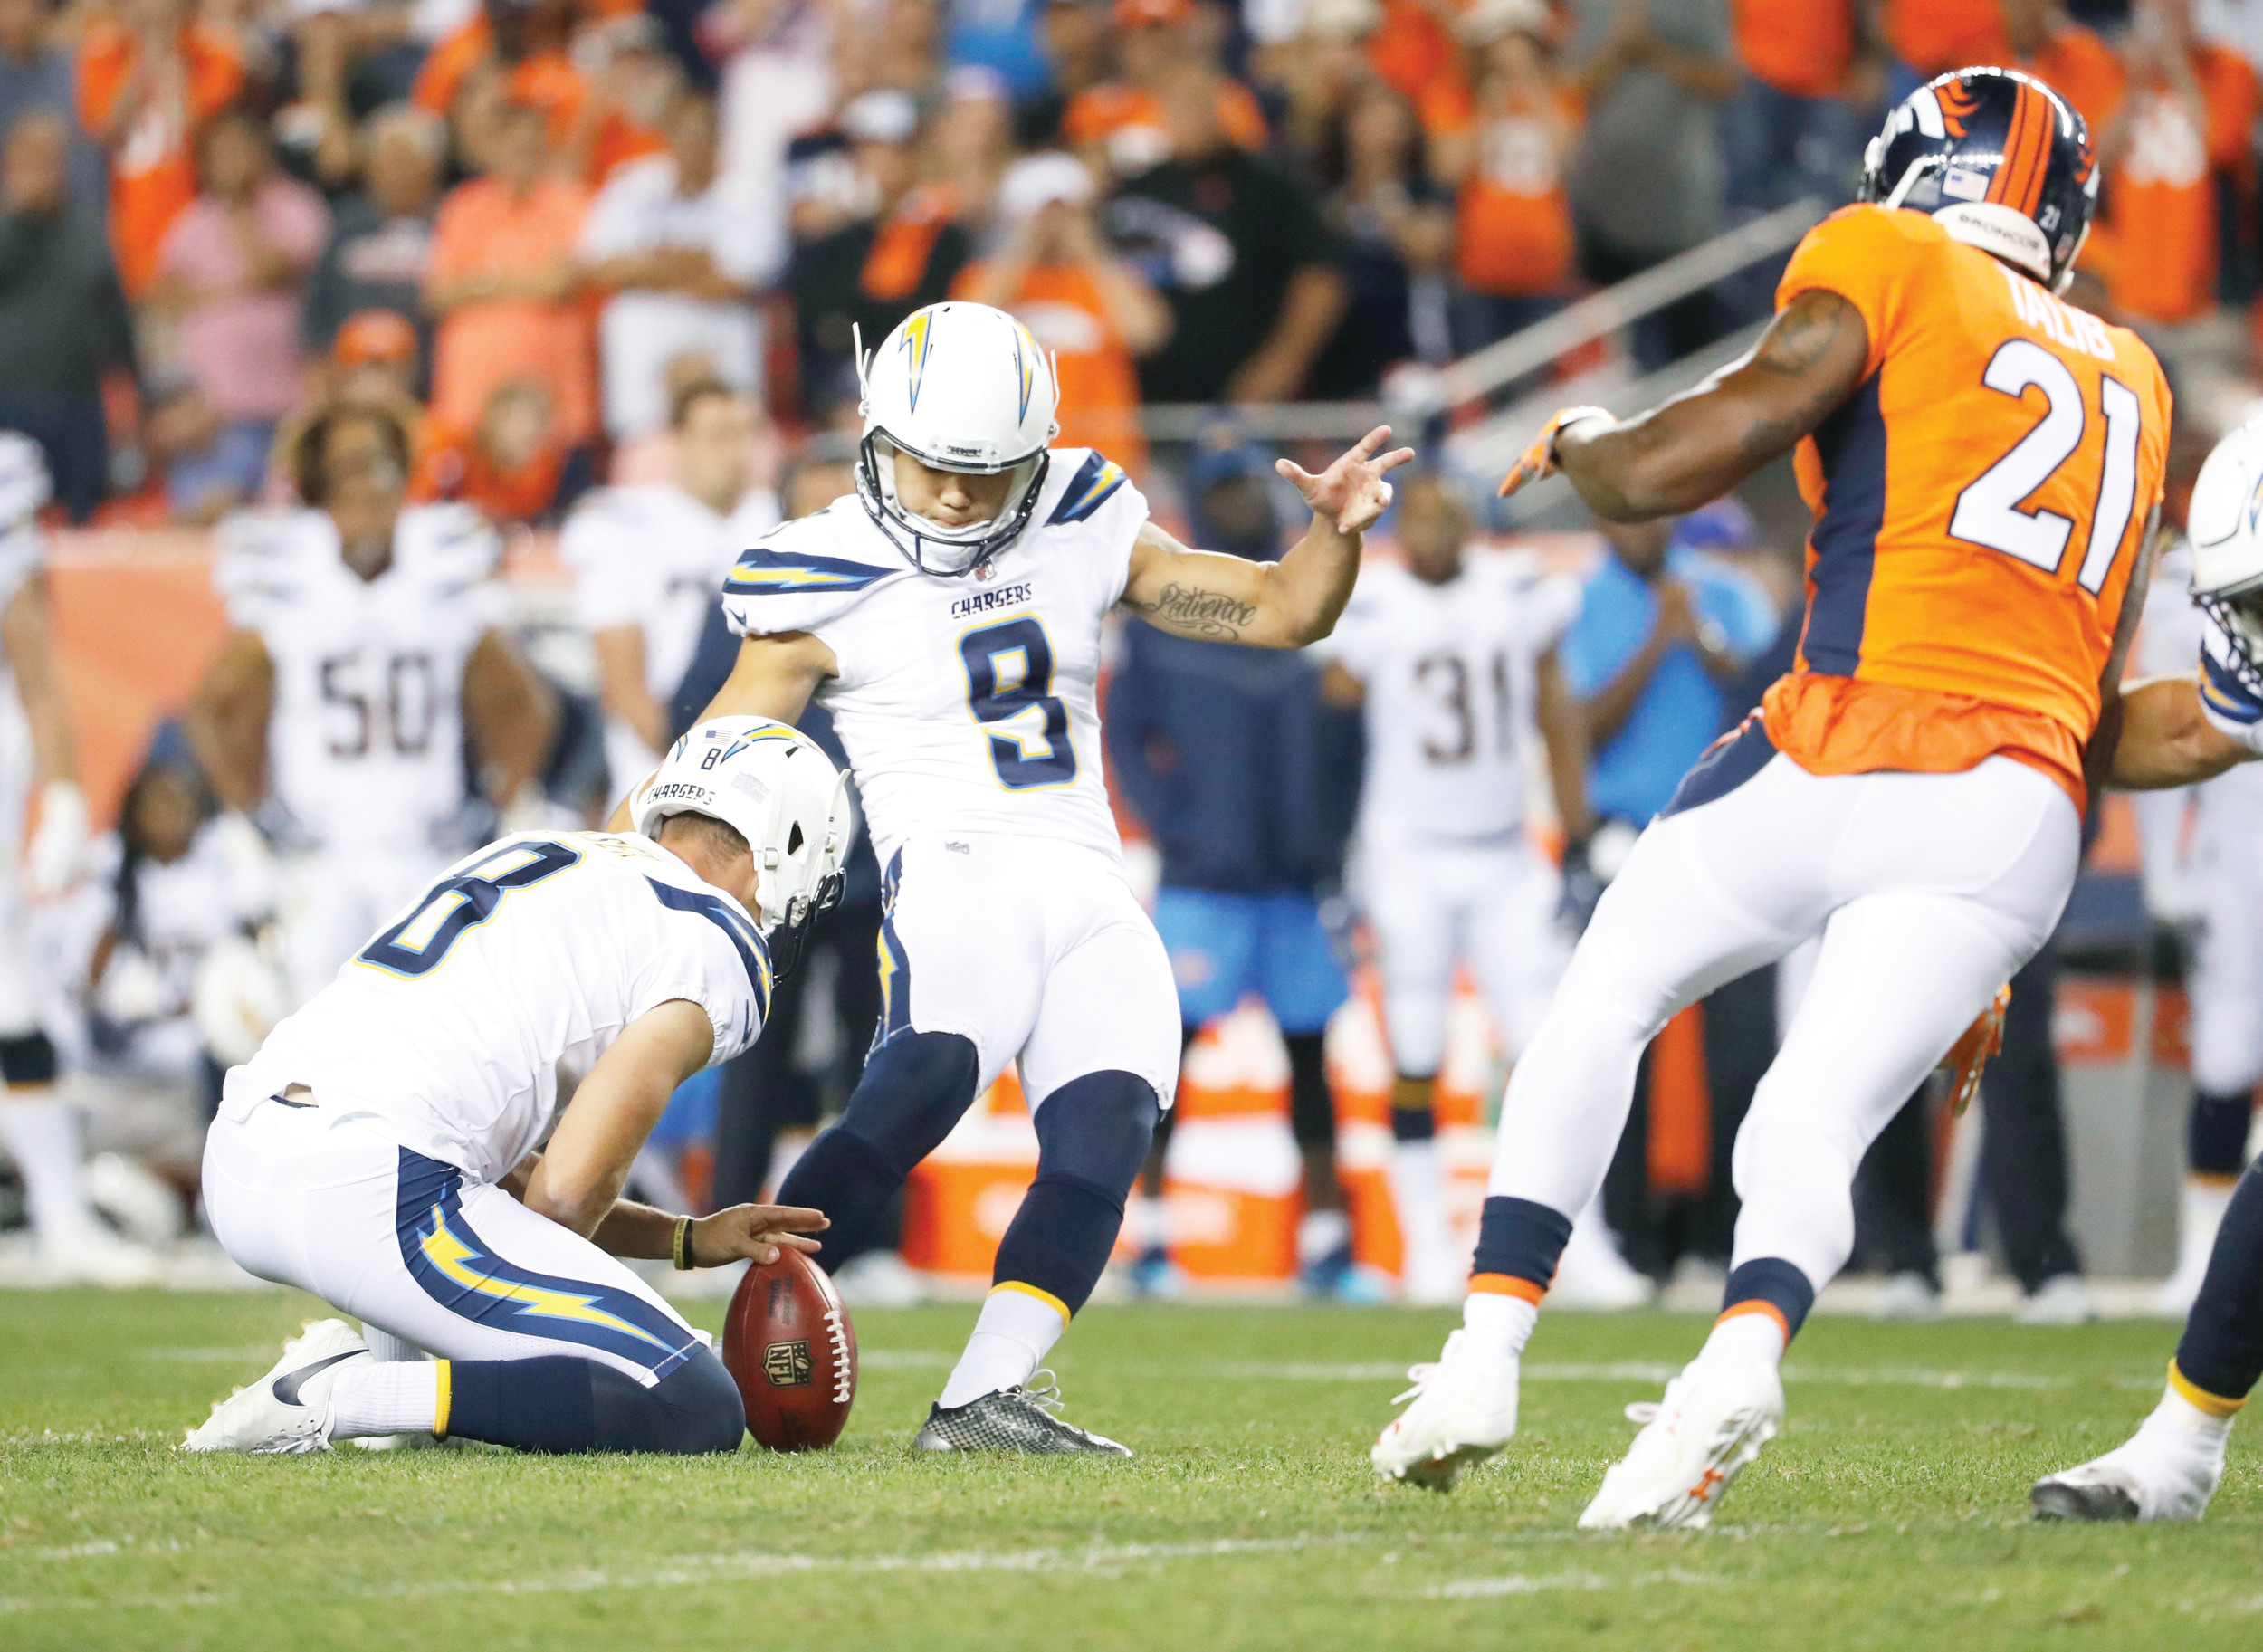 Los Angeles Chargers placekicker Younghoe Koo (9) attempts a game-tying field goal attempt against Denver on Monday in Denver. The kick was blocked and the Broncos won 24-21.